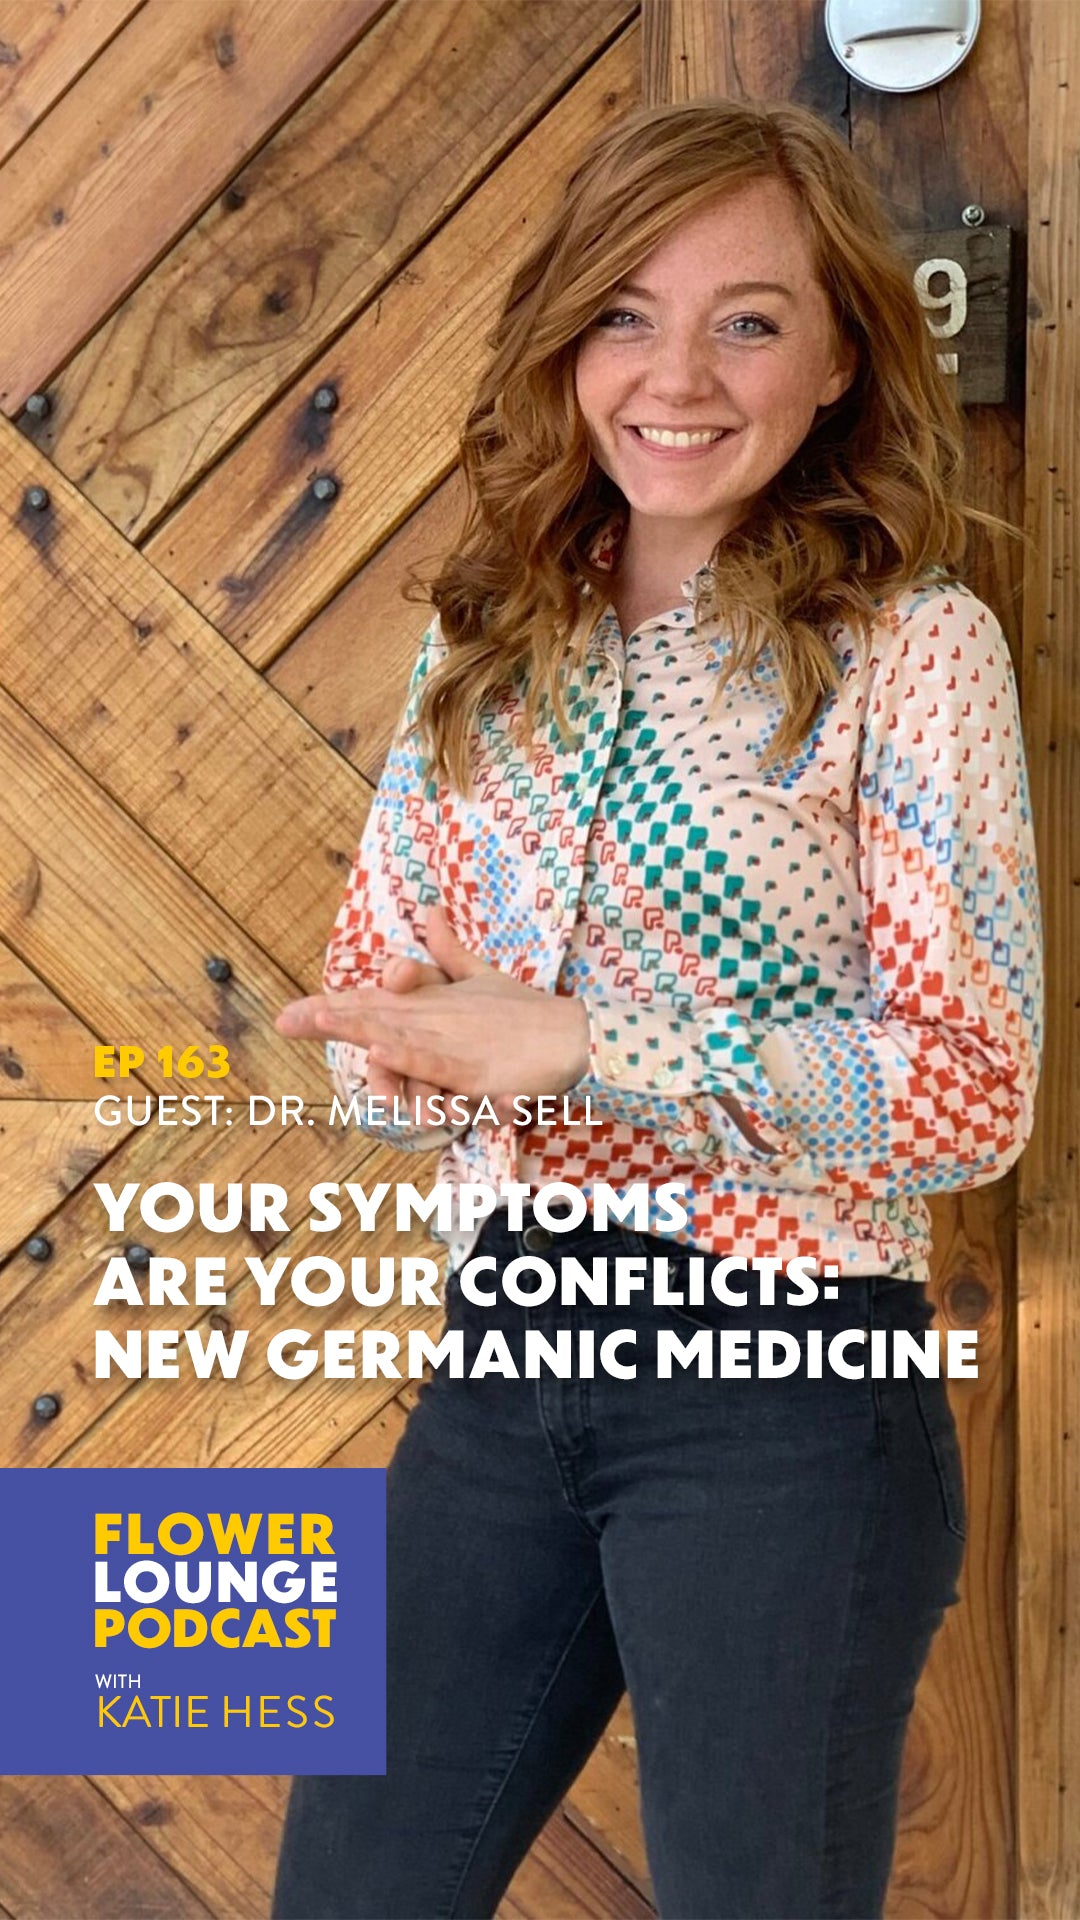 Germanic New Medicine with Melissa Sell on the Flowerlounge Podcast with Katie Hess